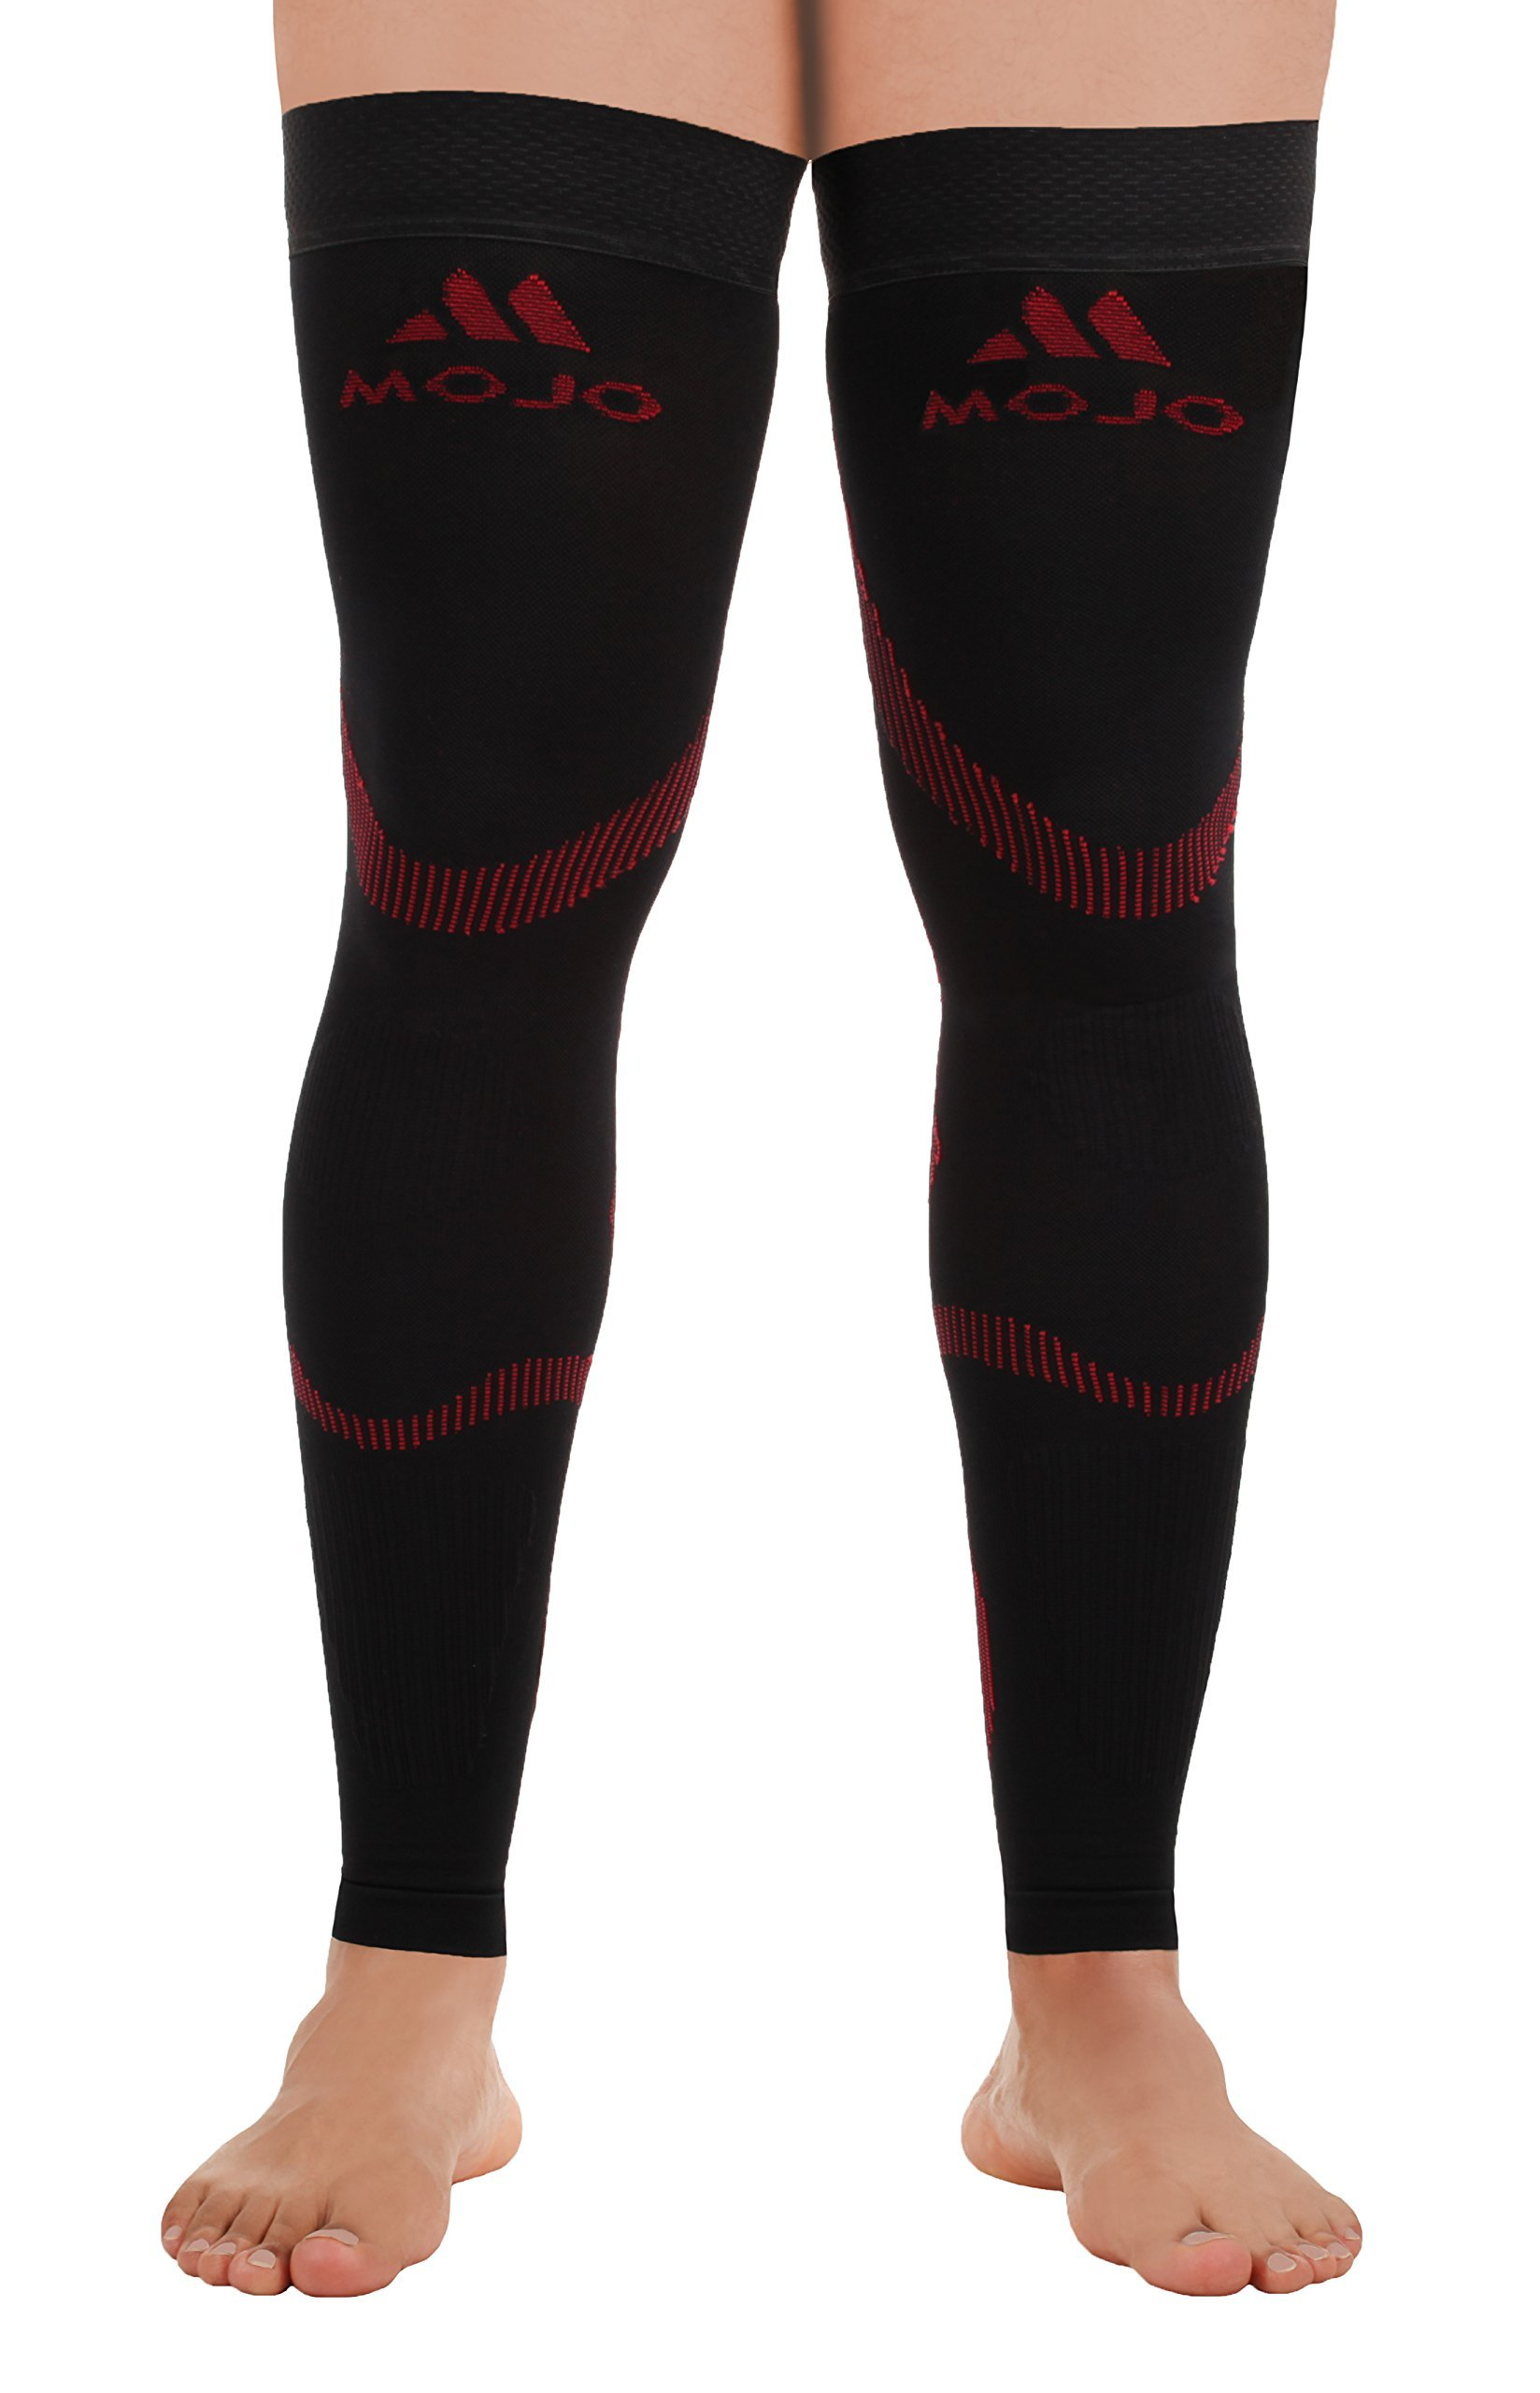 Mojo Full Leg Support & Recovery Compression Stockings Thigh Hi Leg Sleeve - (Small, Black Red) Thigh High Compression Stockings 20-30mmHg